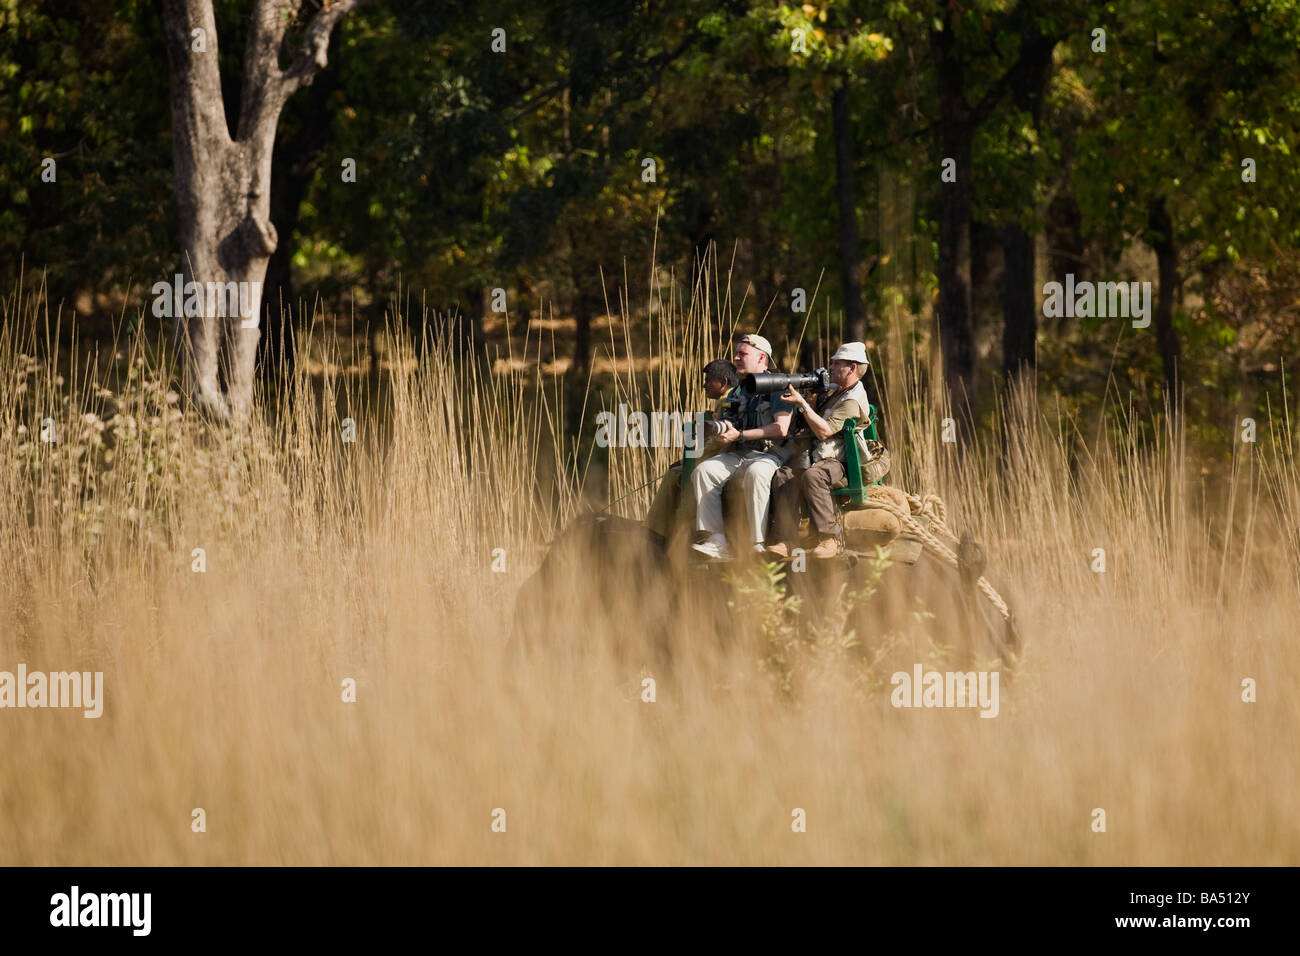 Tourists with telephoto lenses ride on elephant to track tigers in Bandhavgarh National Park Madhya Pradesh Northern - Stock Image